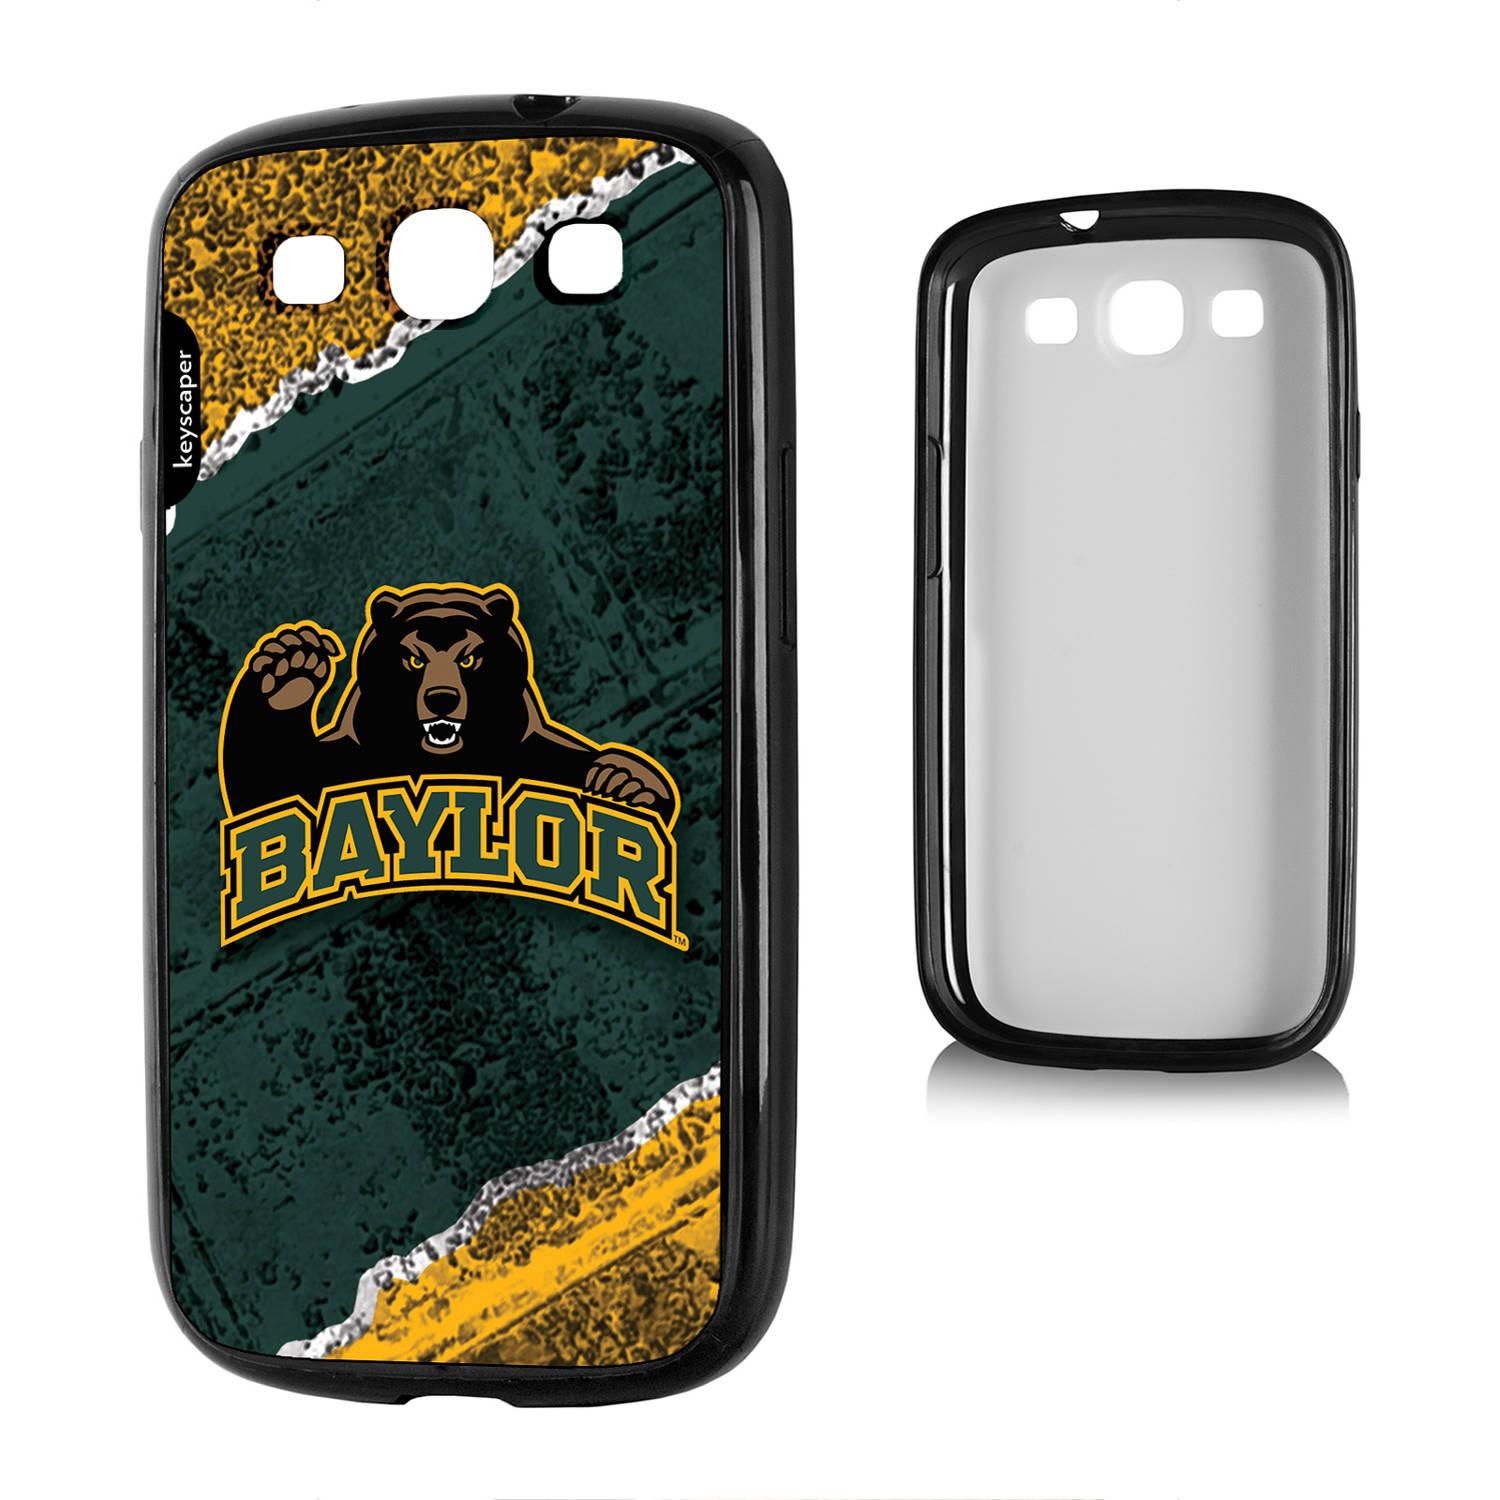 Baylor Bears Galaxy S3 Bumper Case